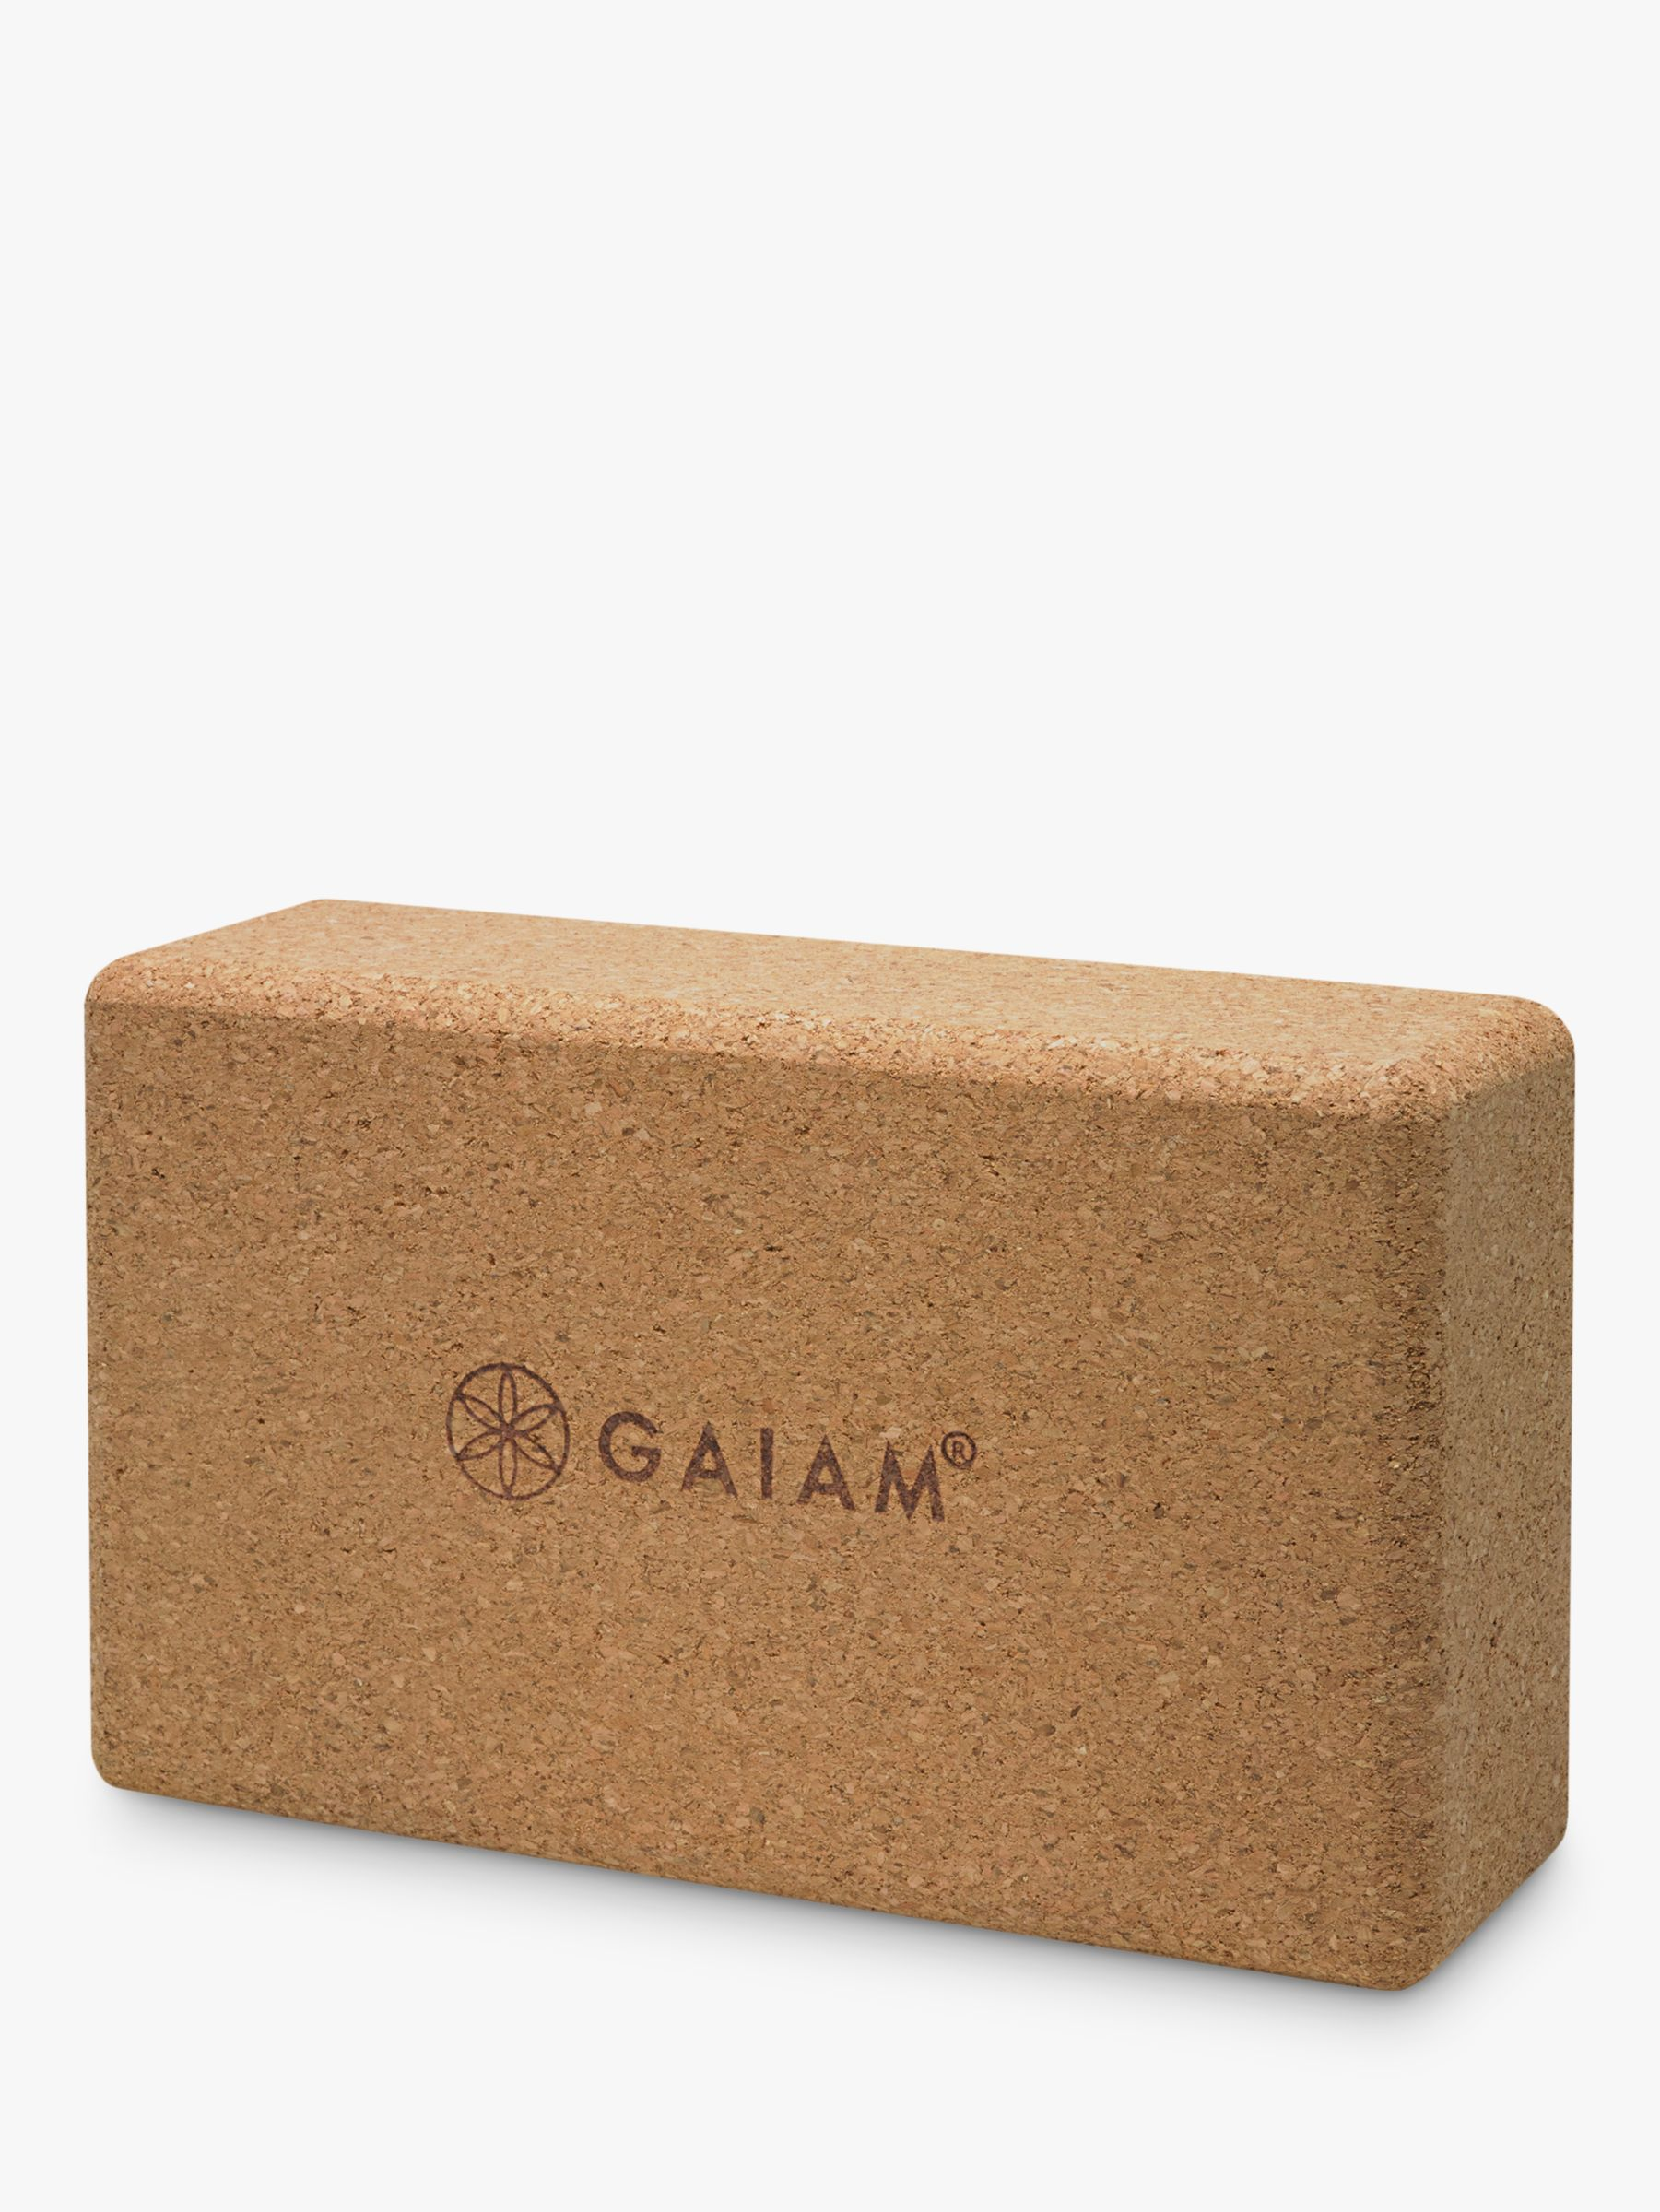 Gaiam Gaiam Cork Yoga Block